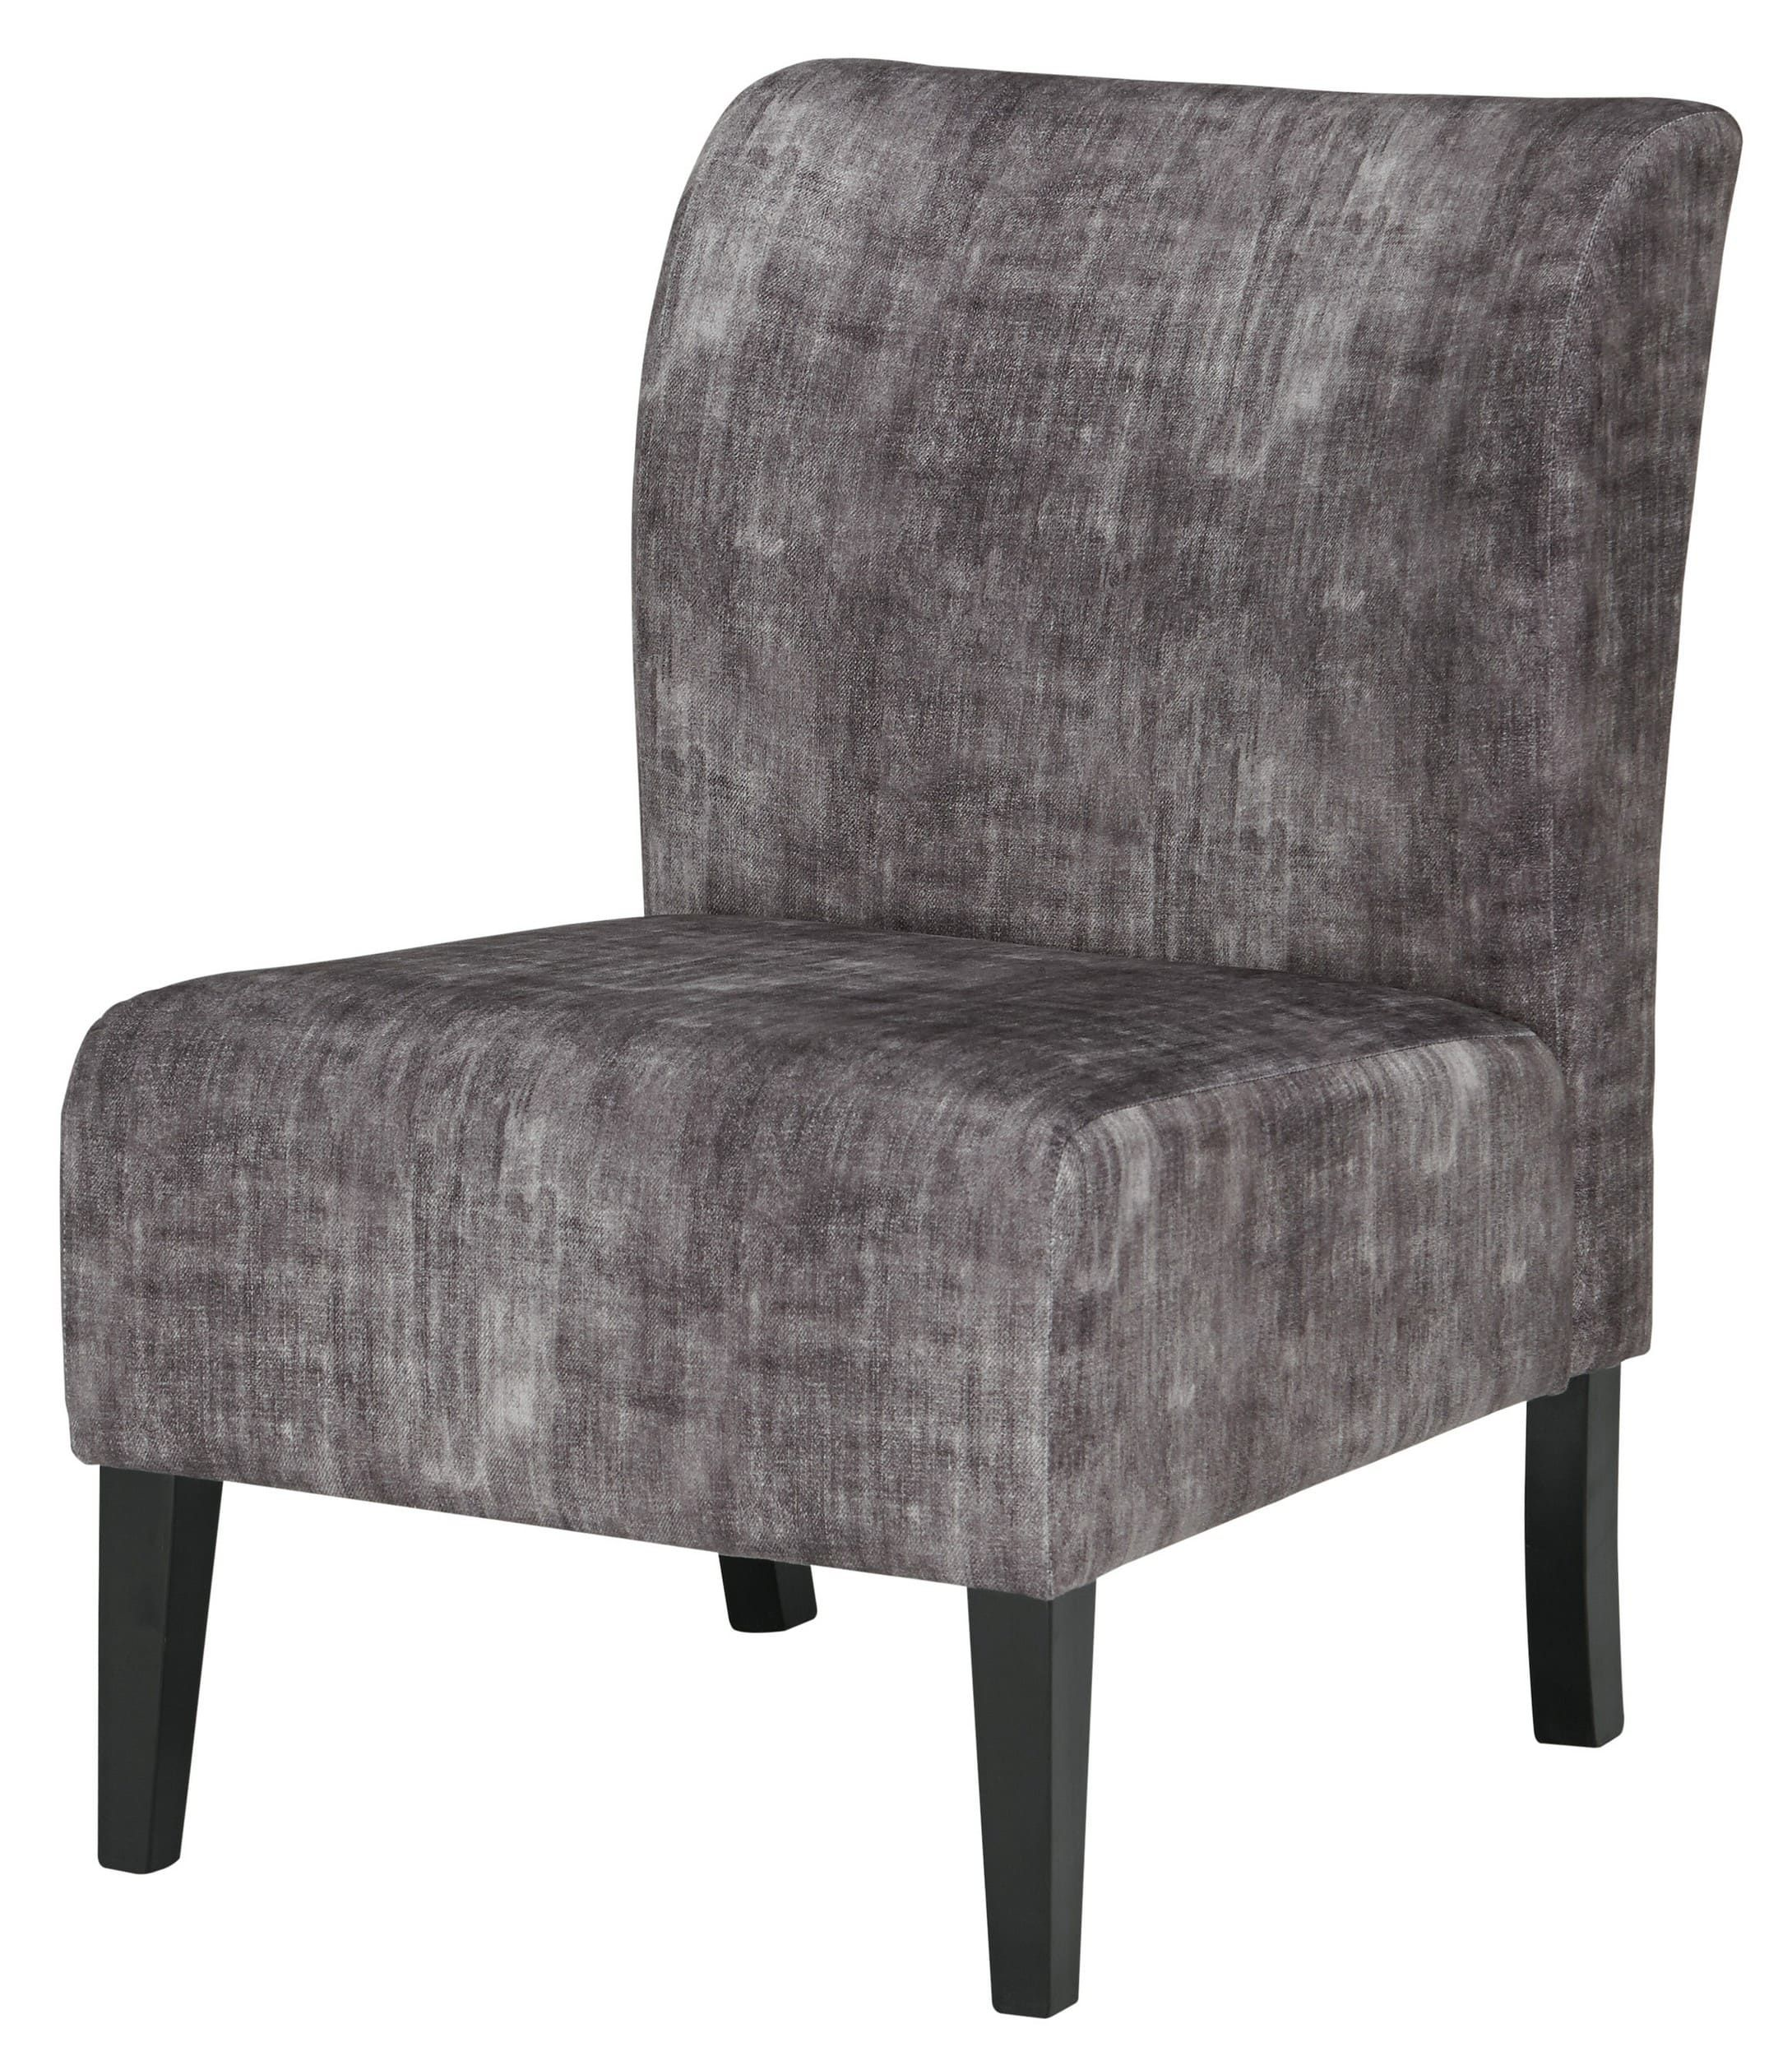 Signature Design By Ashley Triptis Charcoal Accent Chair Reviews